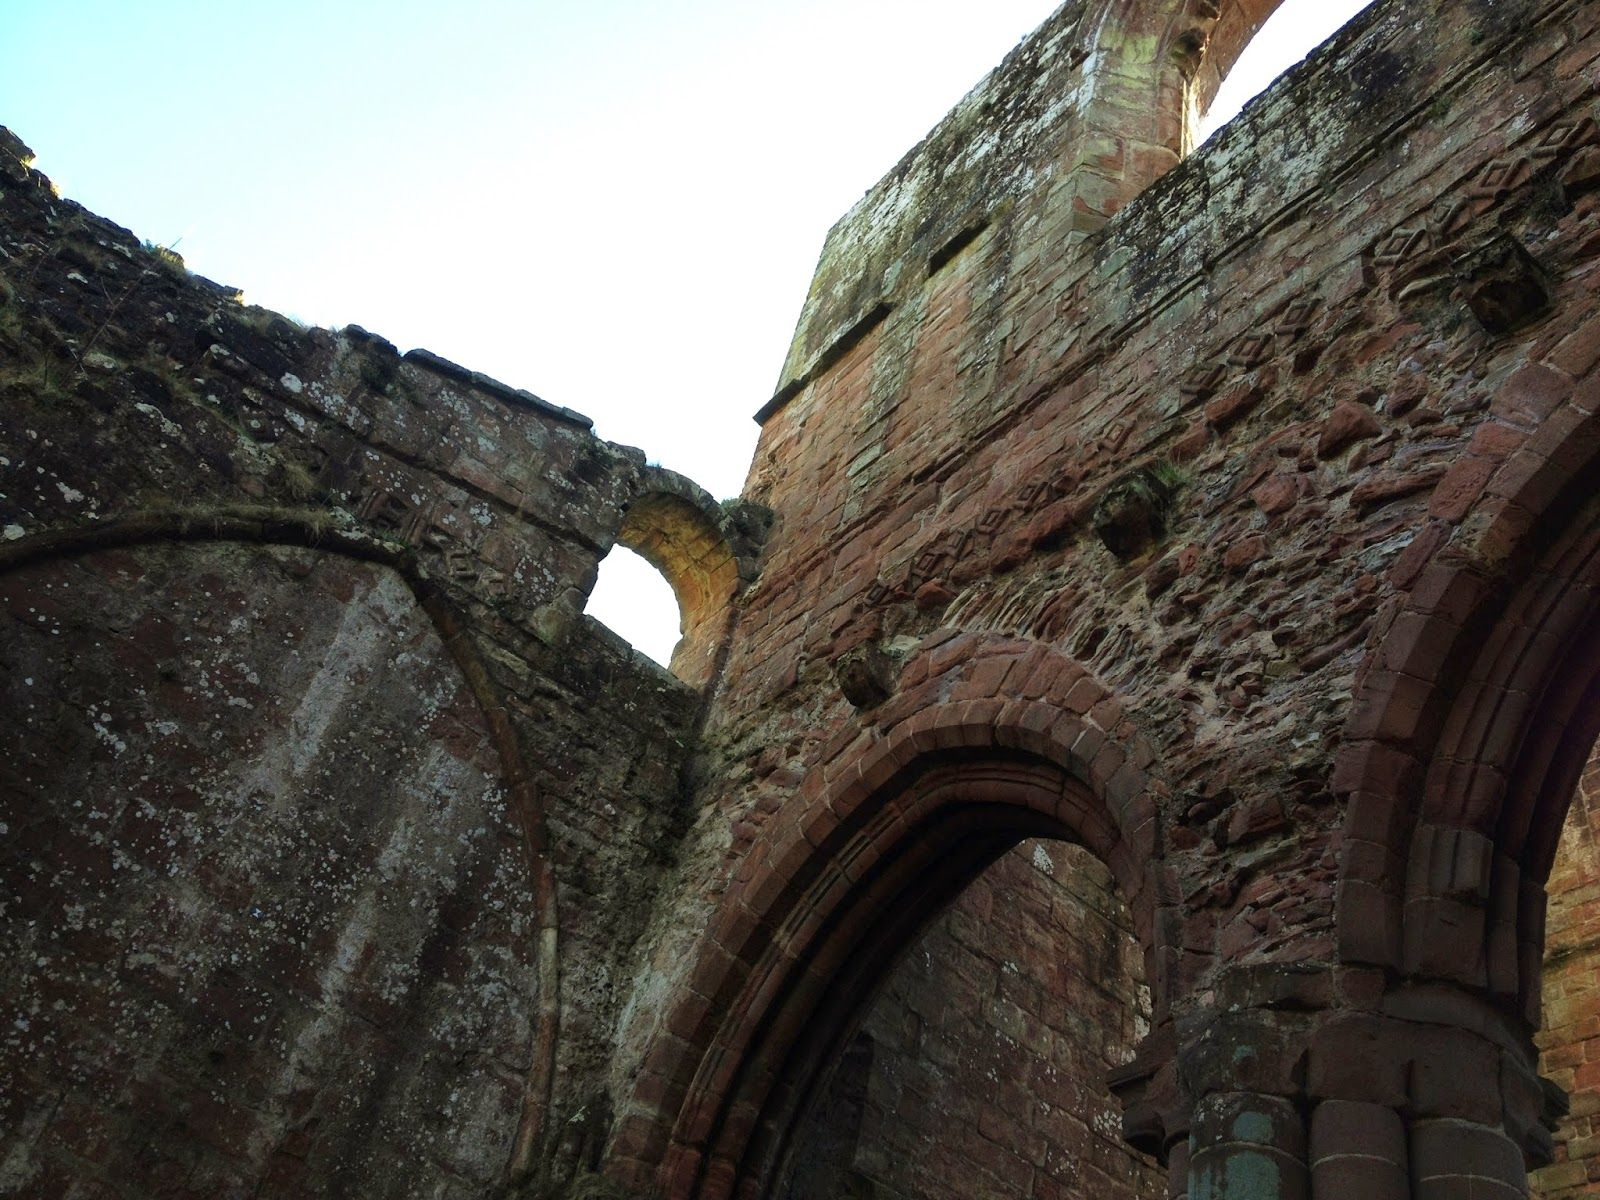 Furness Hidden Heritage: Furness Abbey, the Second Richest Cistercian Abbey in Britain